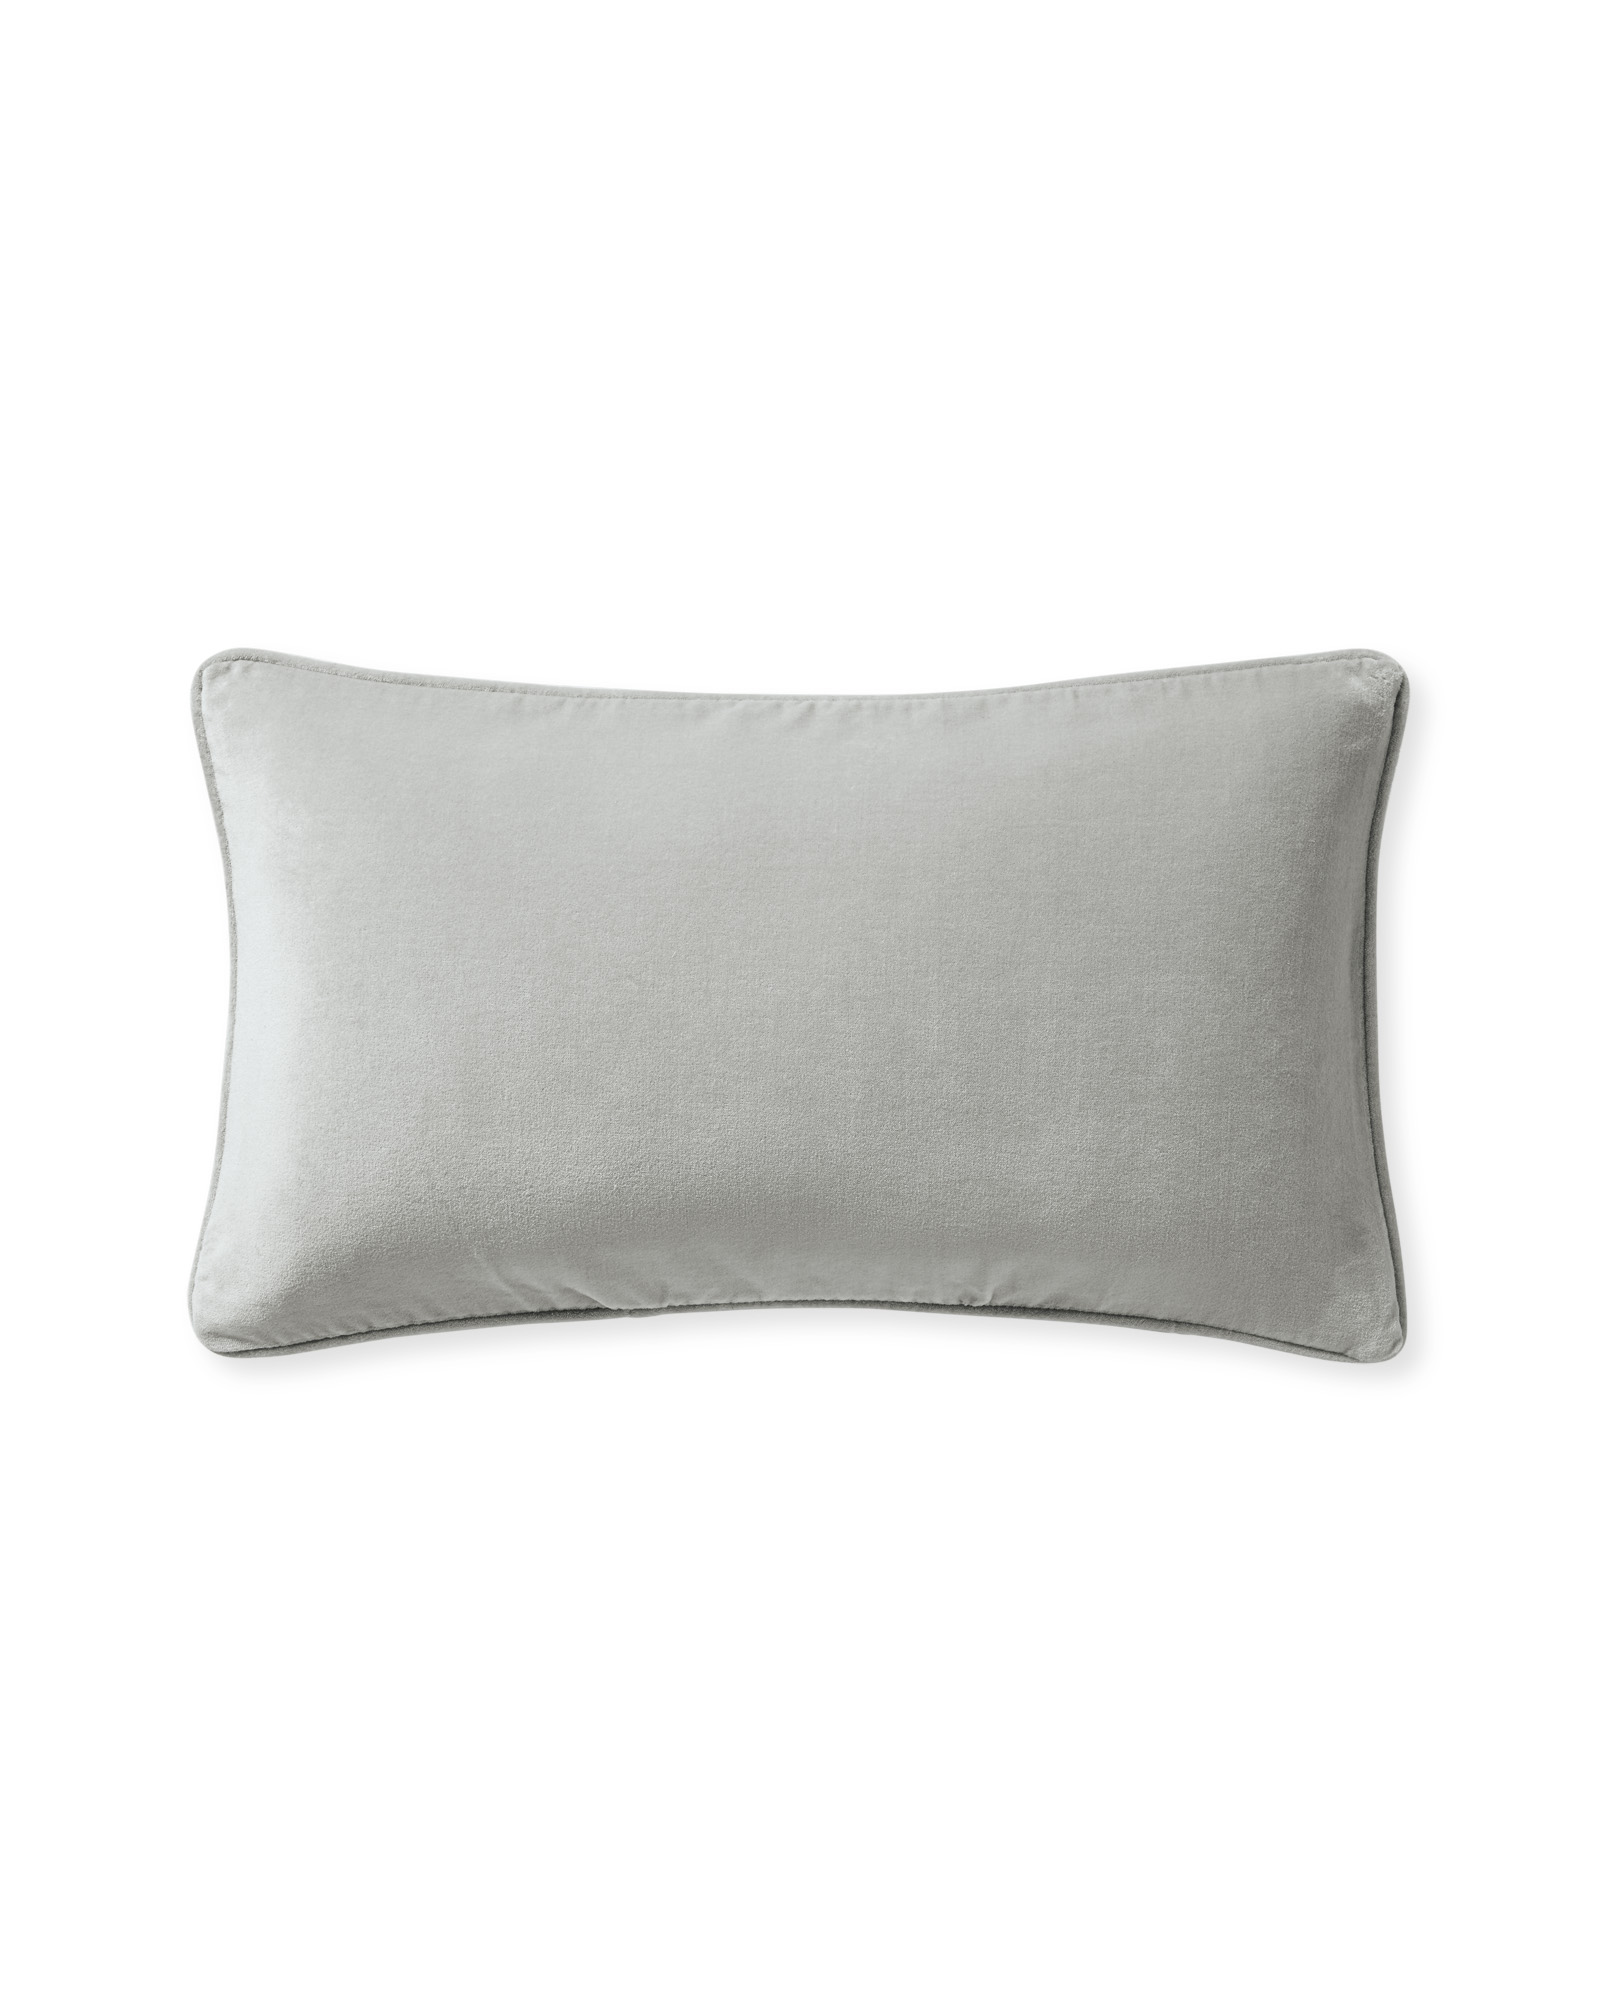 Kingsbury Pillow Cover, Fog